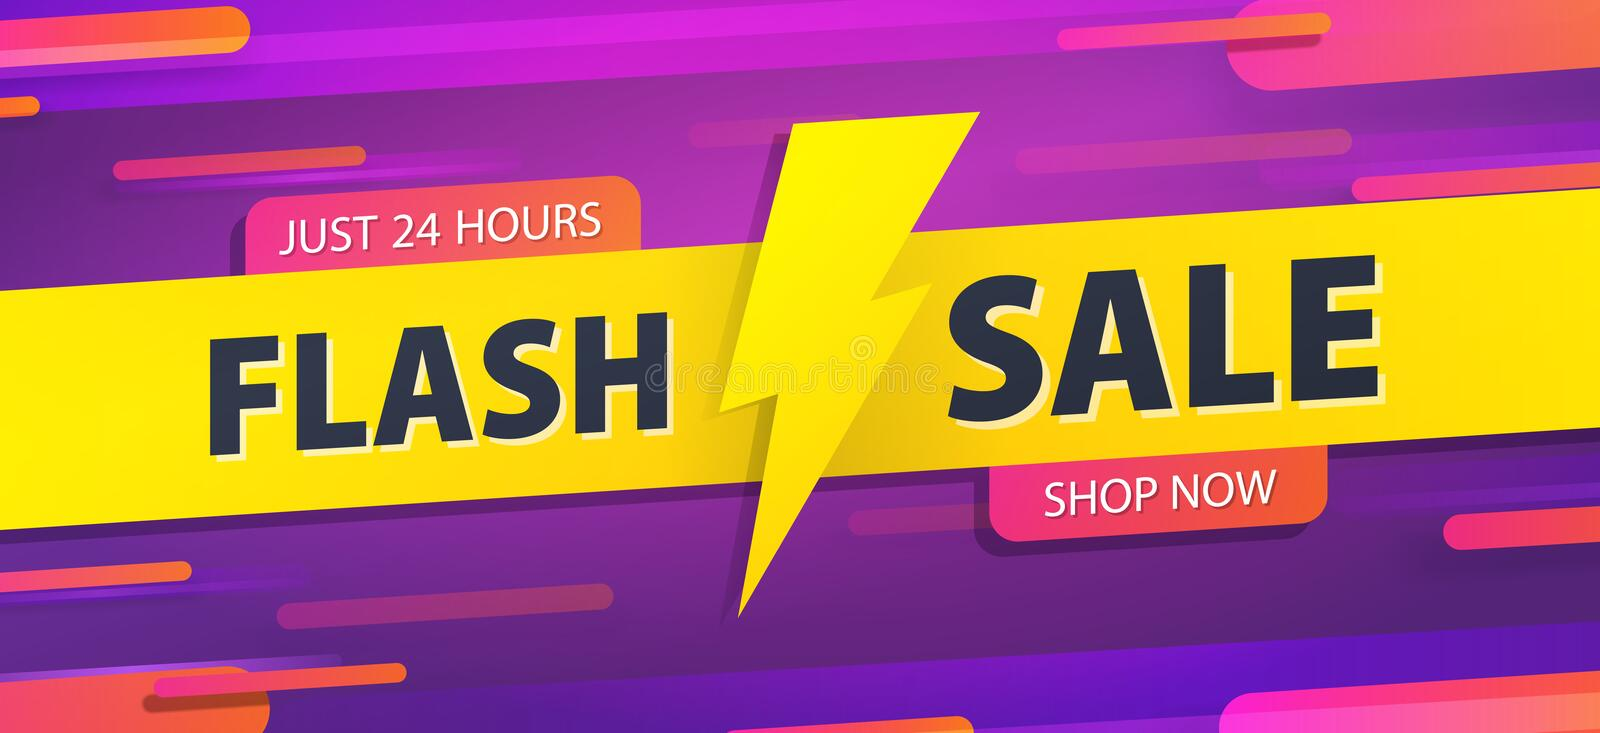 Yellow tag Flash sale 24 hour promotion website banner heading design on graphic purple background vector for banner or poster. stock illustration